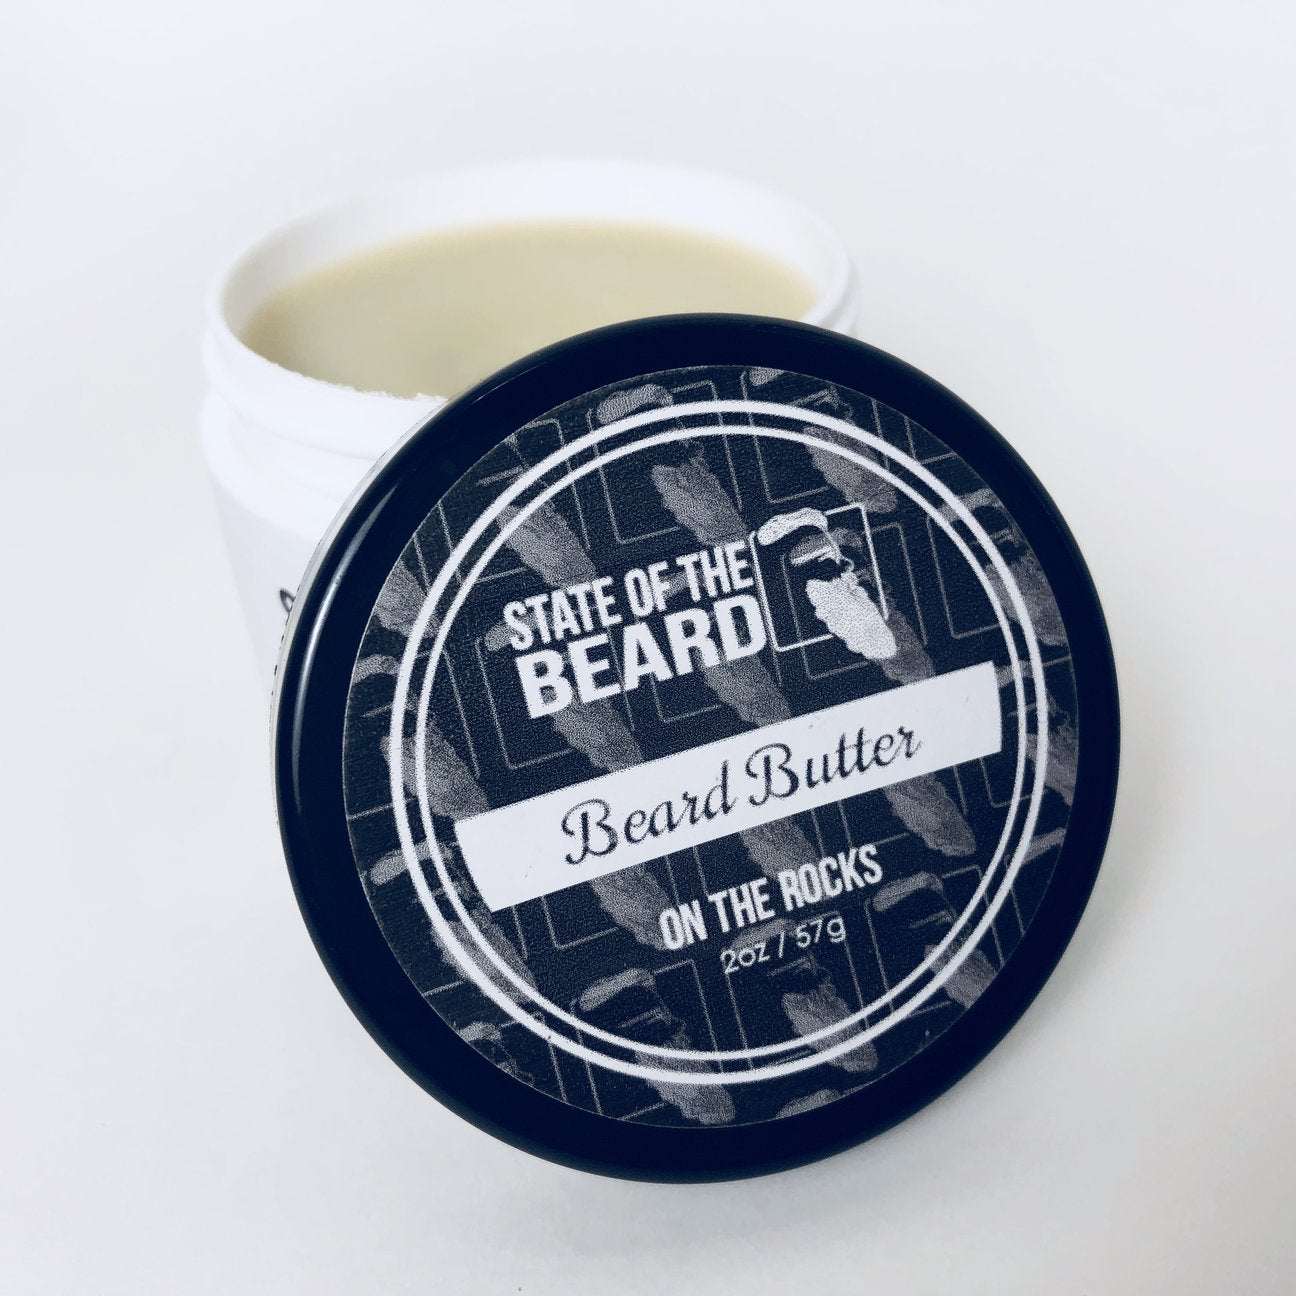 STATE OF THE BEARD - BEARD BUTTER ON THE ROCKS